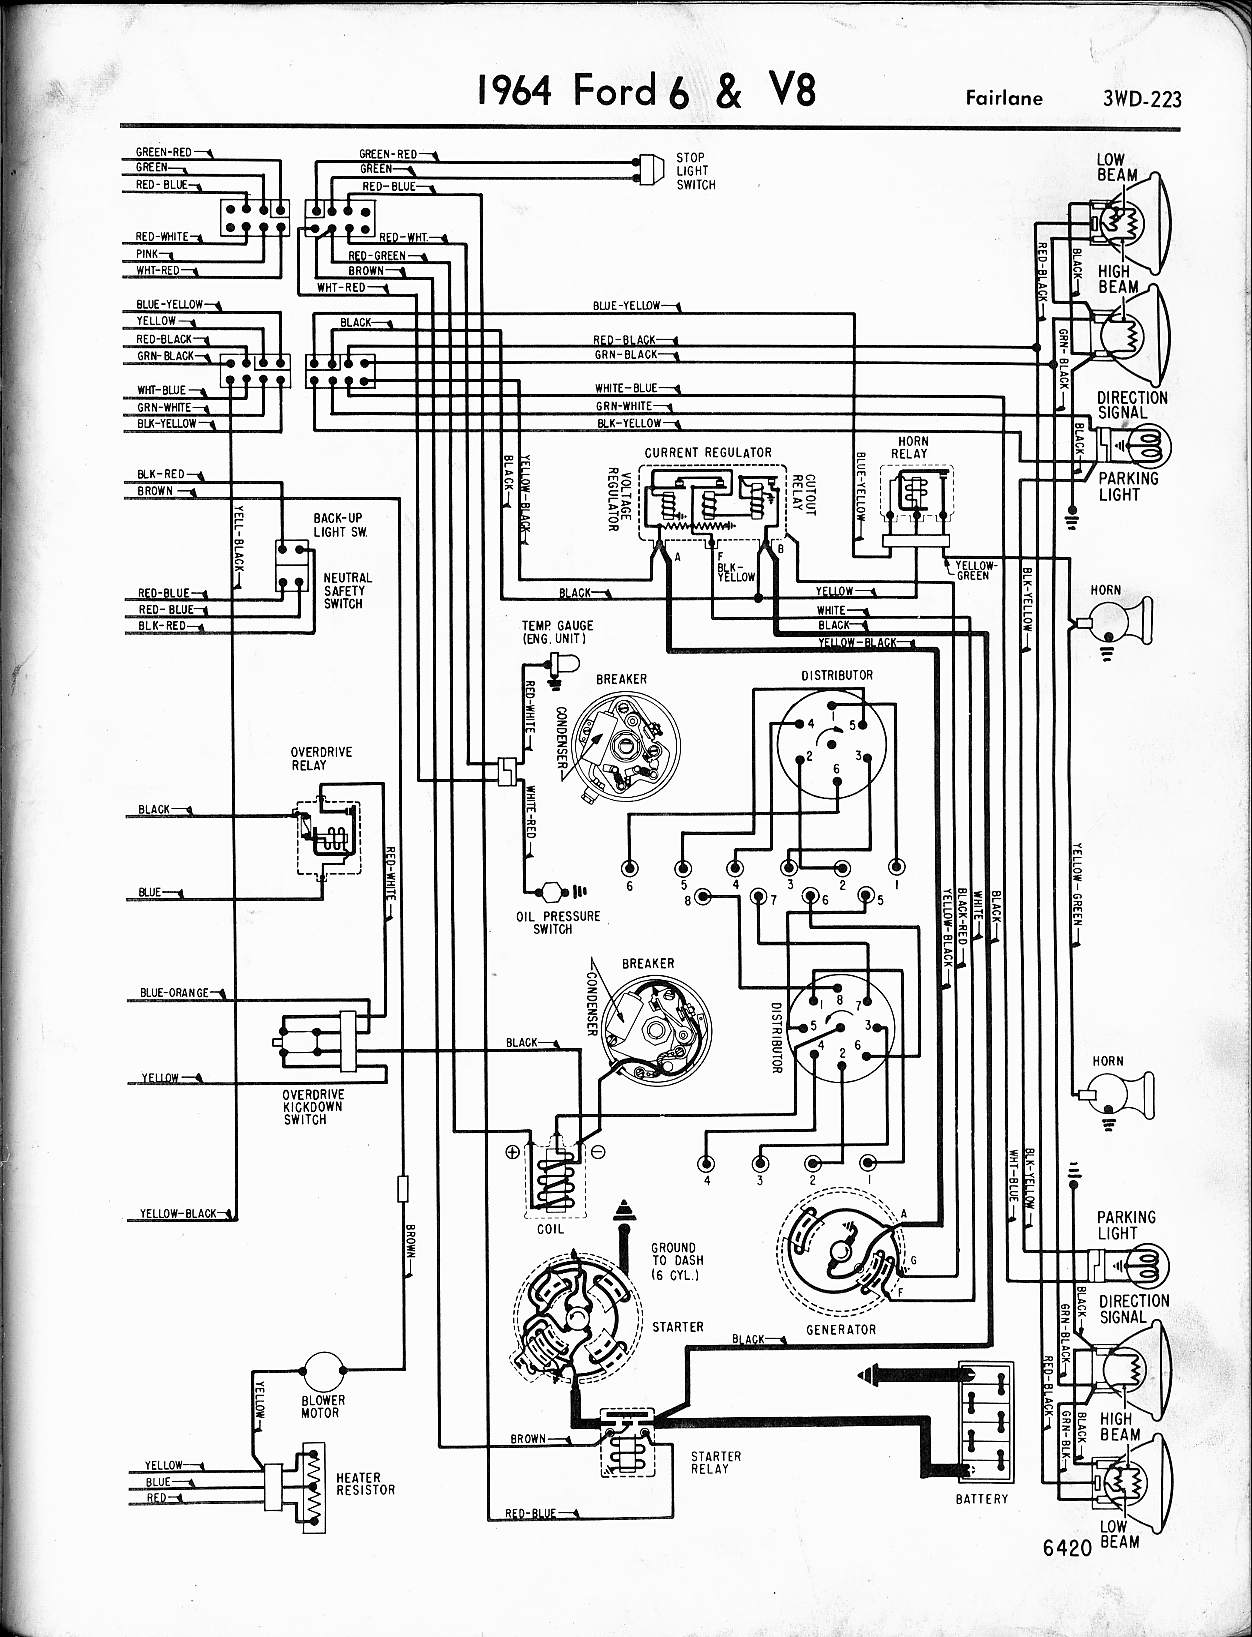 MWire5765 223 57 65 ford wiring diagrams  at alyssarenee.co